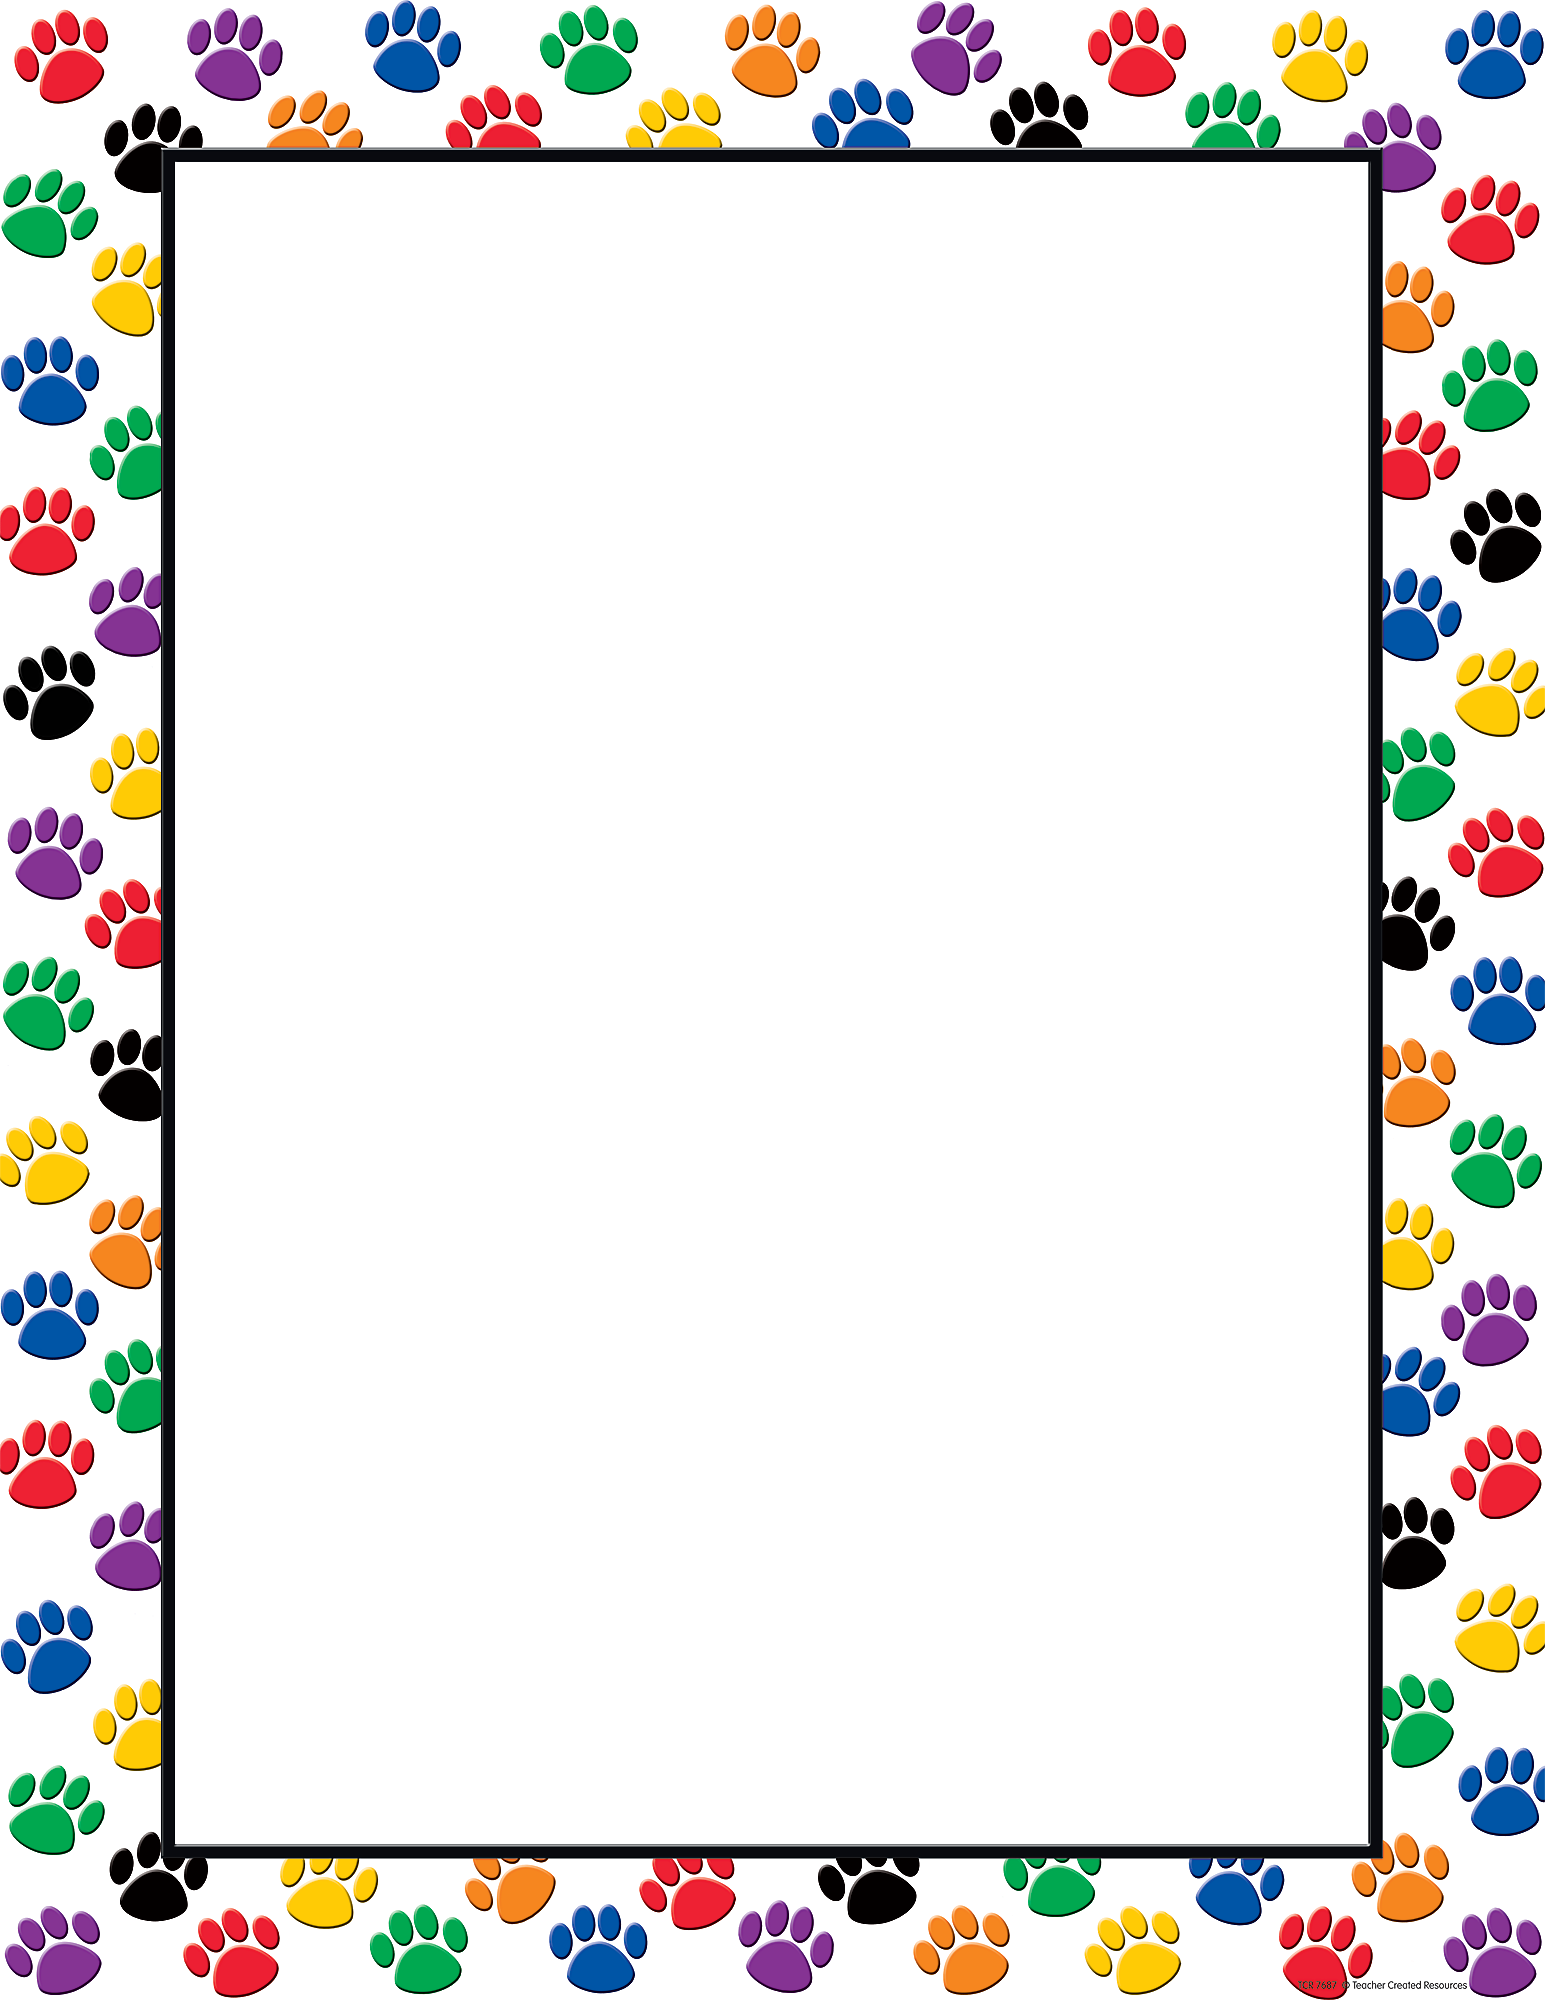 It's just an image of Impeccable Paw Patrol Borders